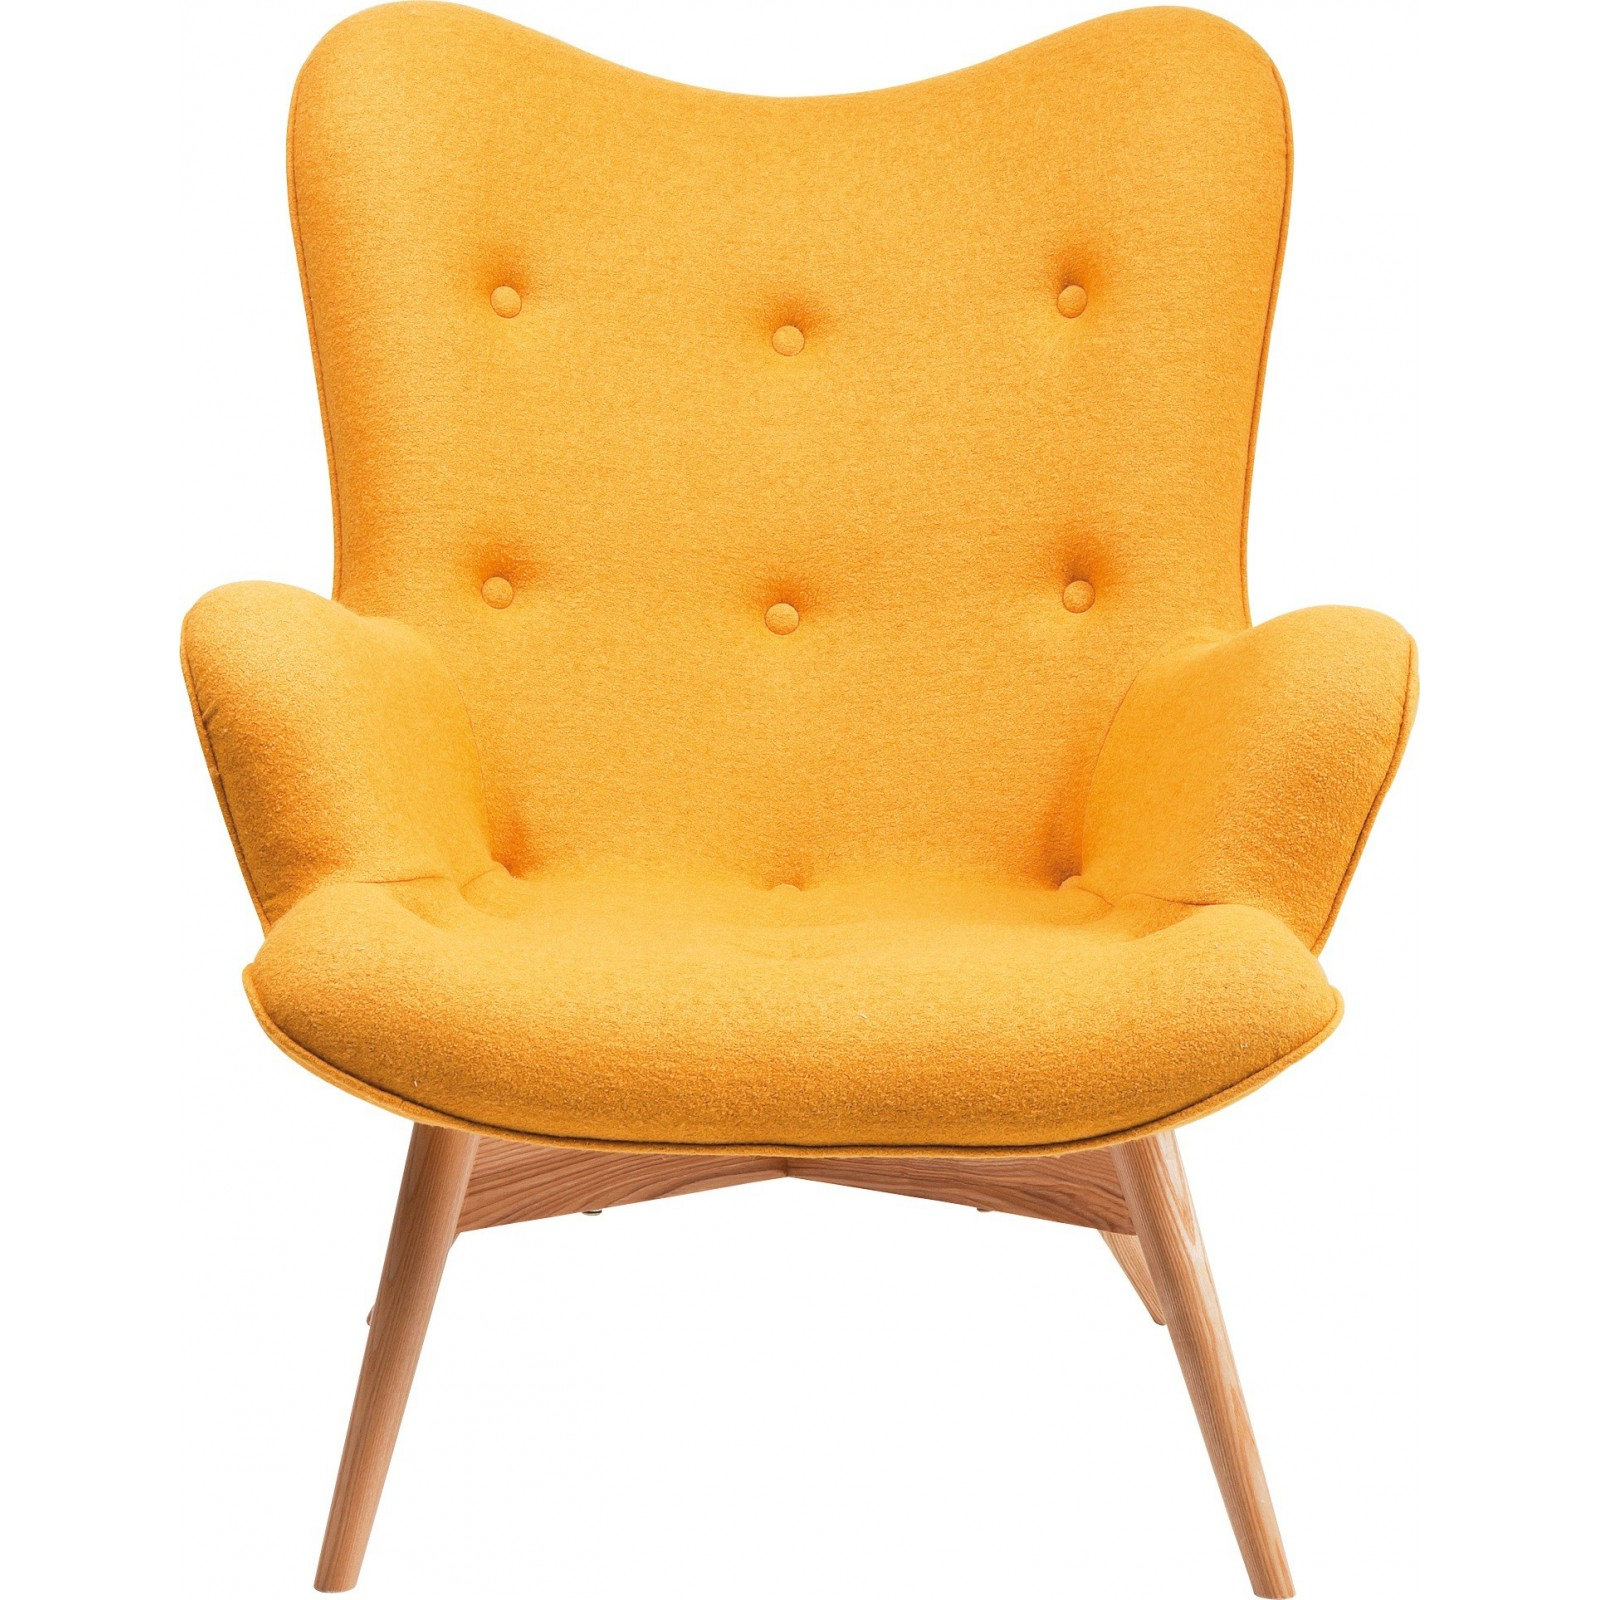 Fauteuil Scandinave Jaune Angels Wings Kare Design